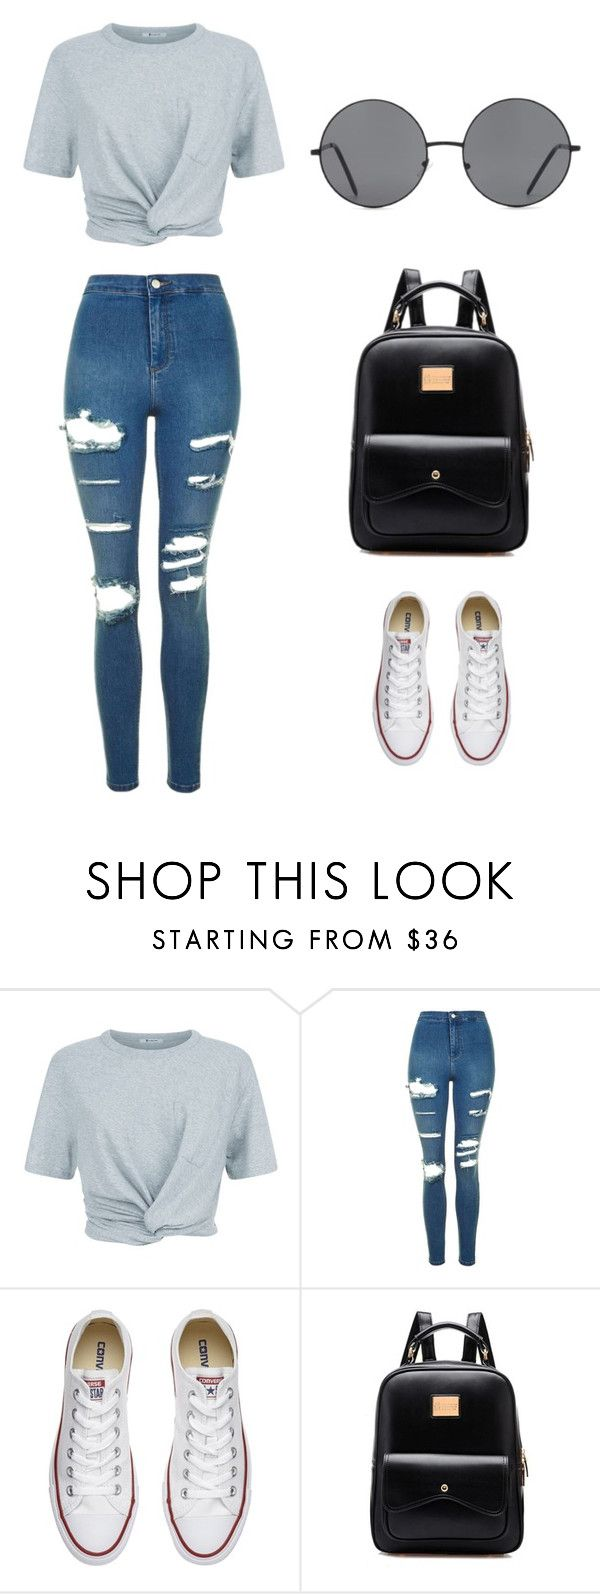 """Untitled #211"" by karenrodriguez-iv on Polyvore featuring T By Alexander Wang, Topshop, Converse and Forever 21"